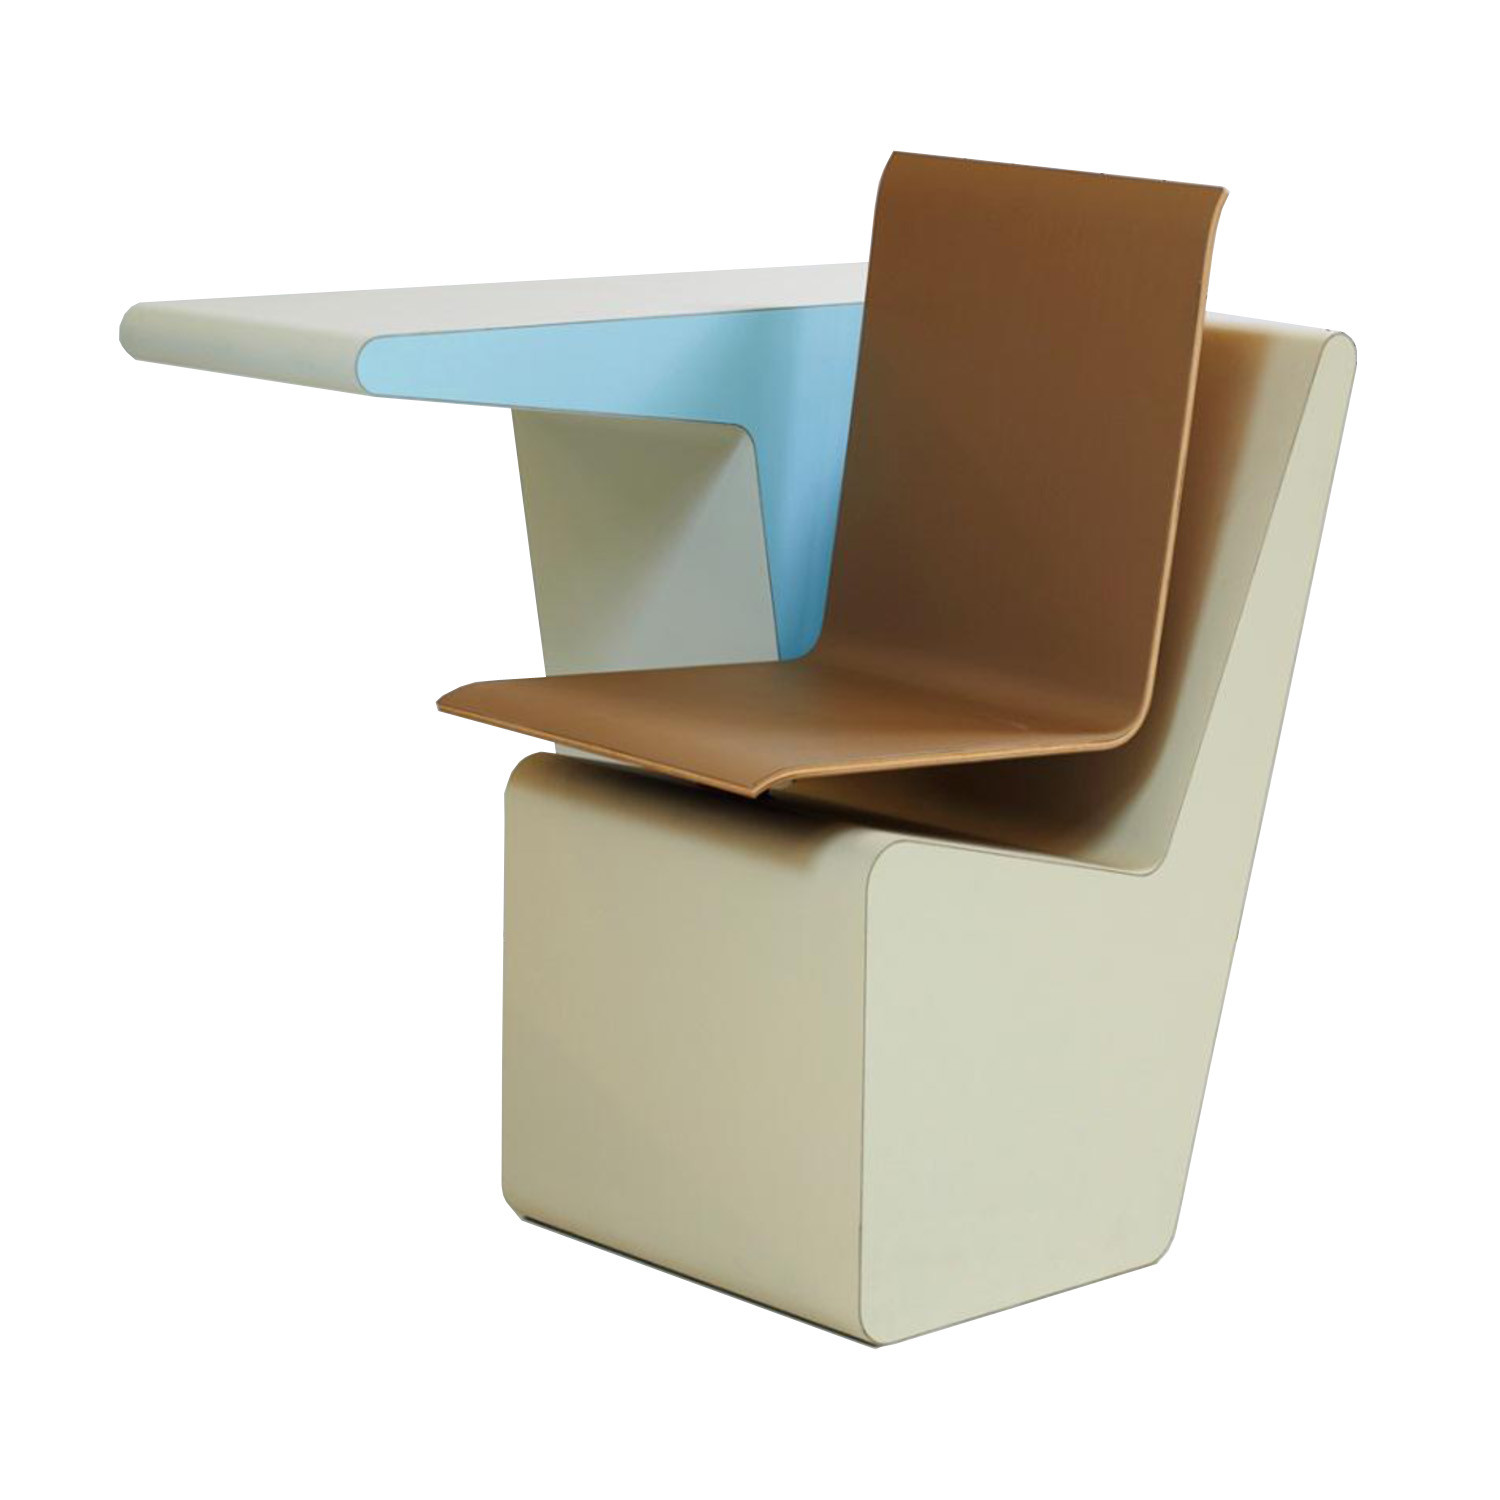 SideSeat and Desk Multi Functional Furniture